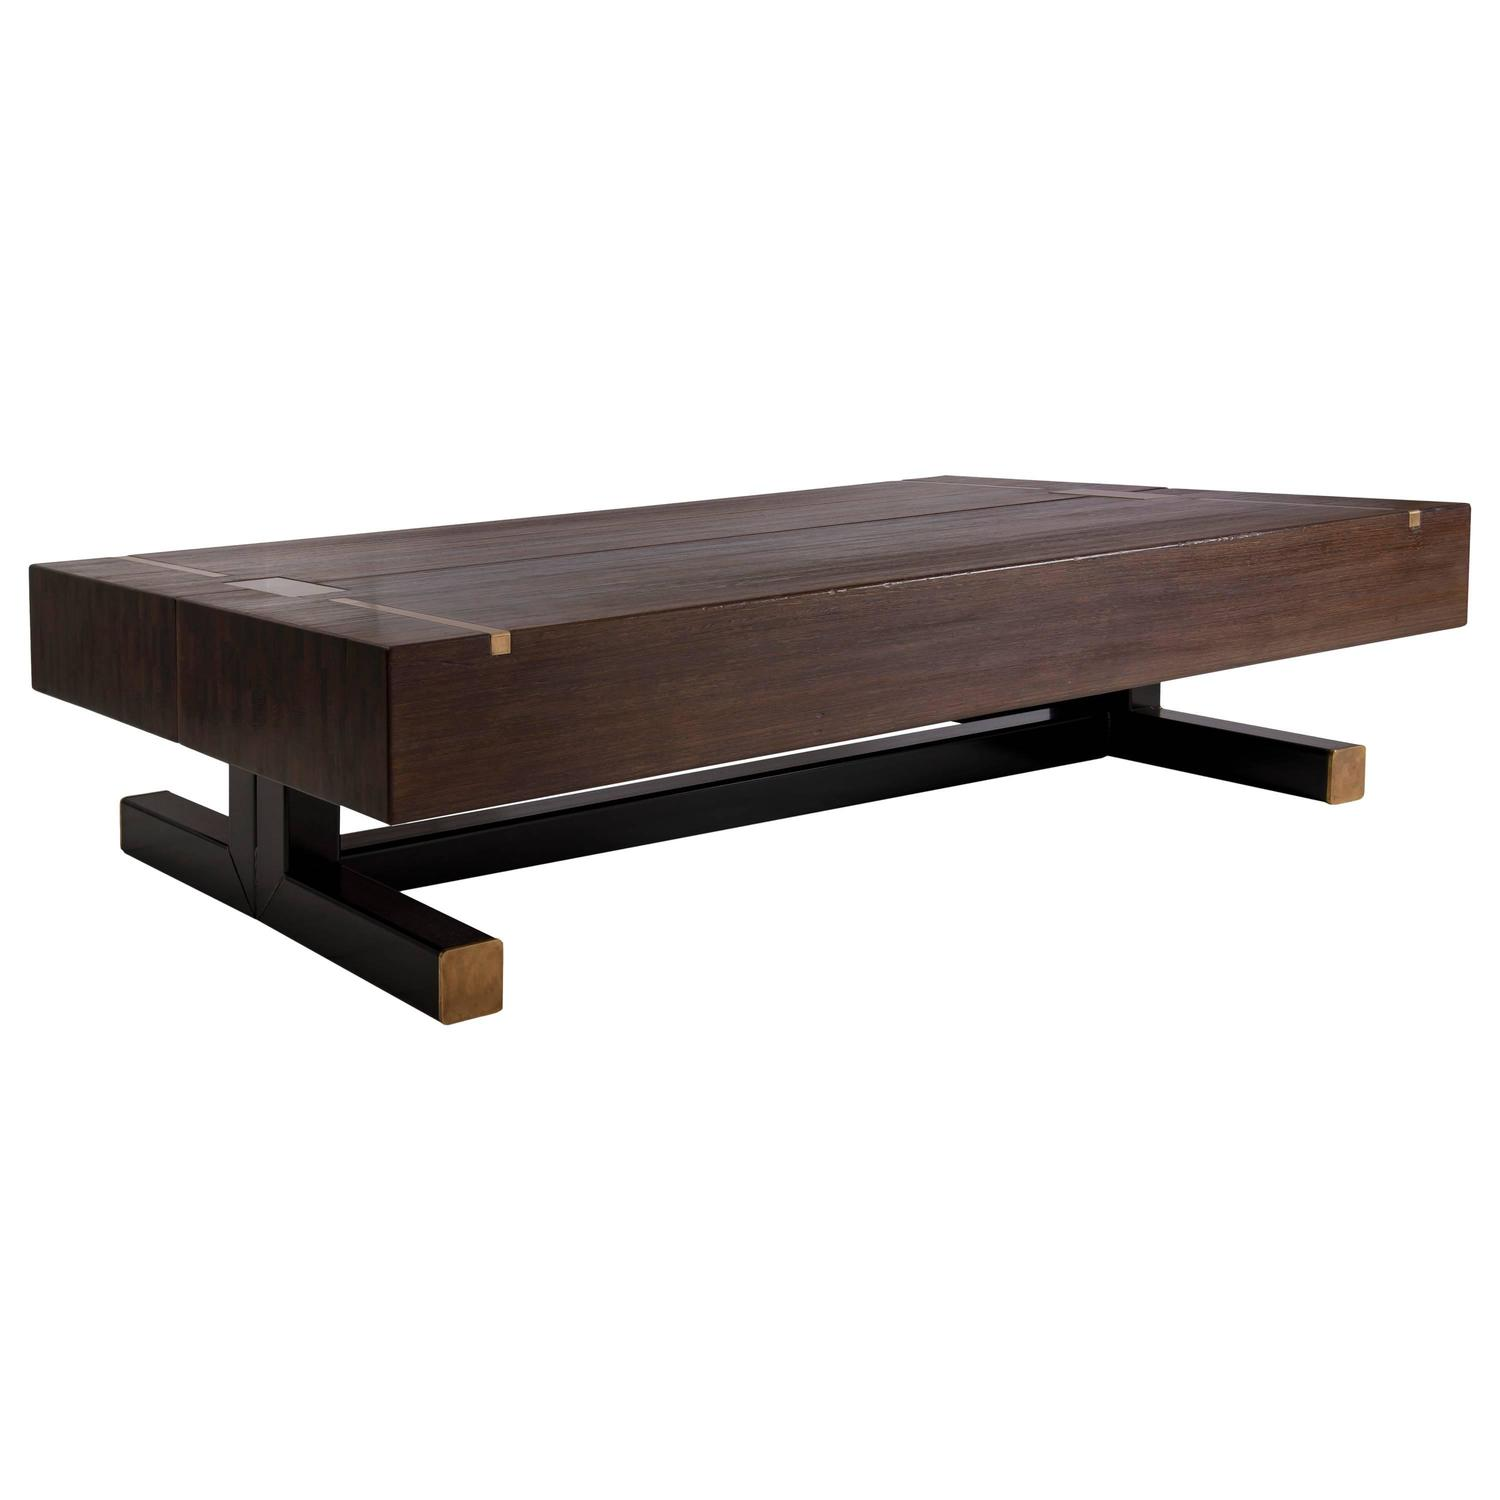 Contemporary coffee table original j wabbes 1960 39 s wenge end grain wood top for sale at 1stdibs Wenge coffee tables